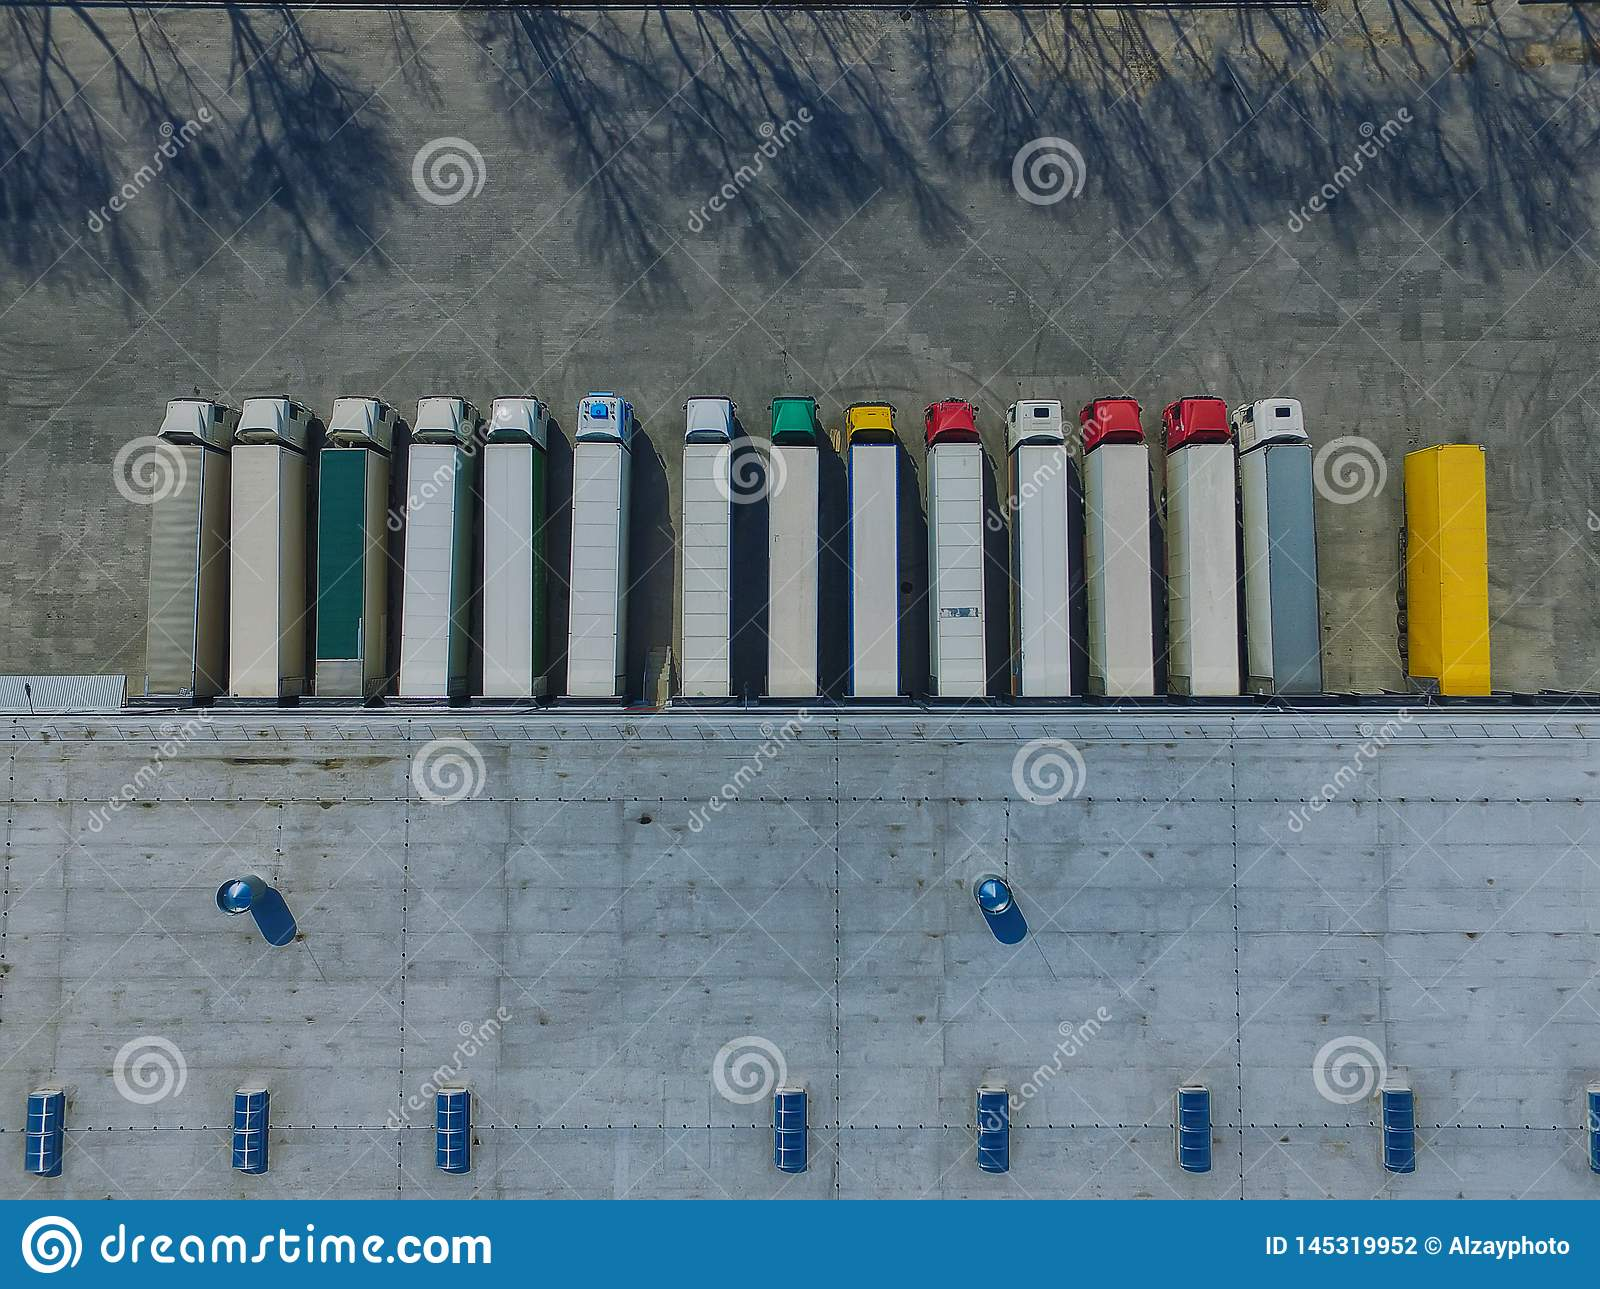 Aerial view of goods warehouse. Logistics center in industrial city zone from above.